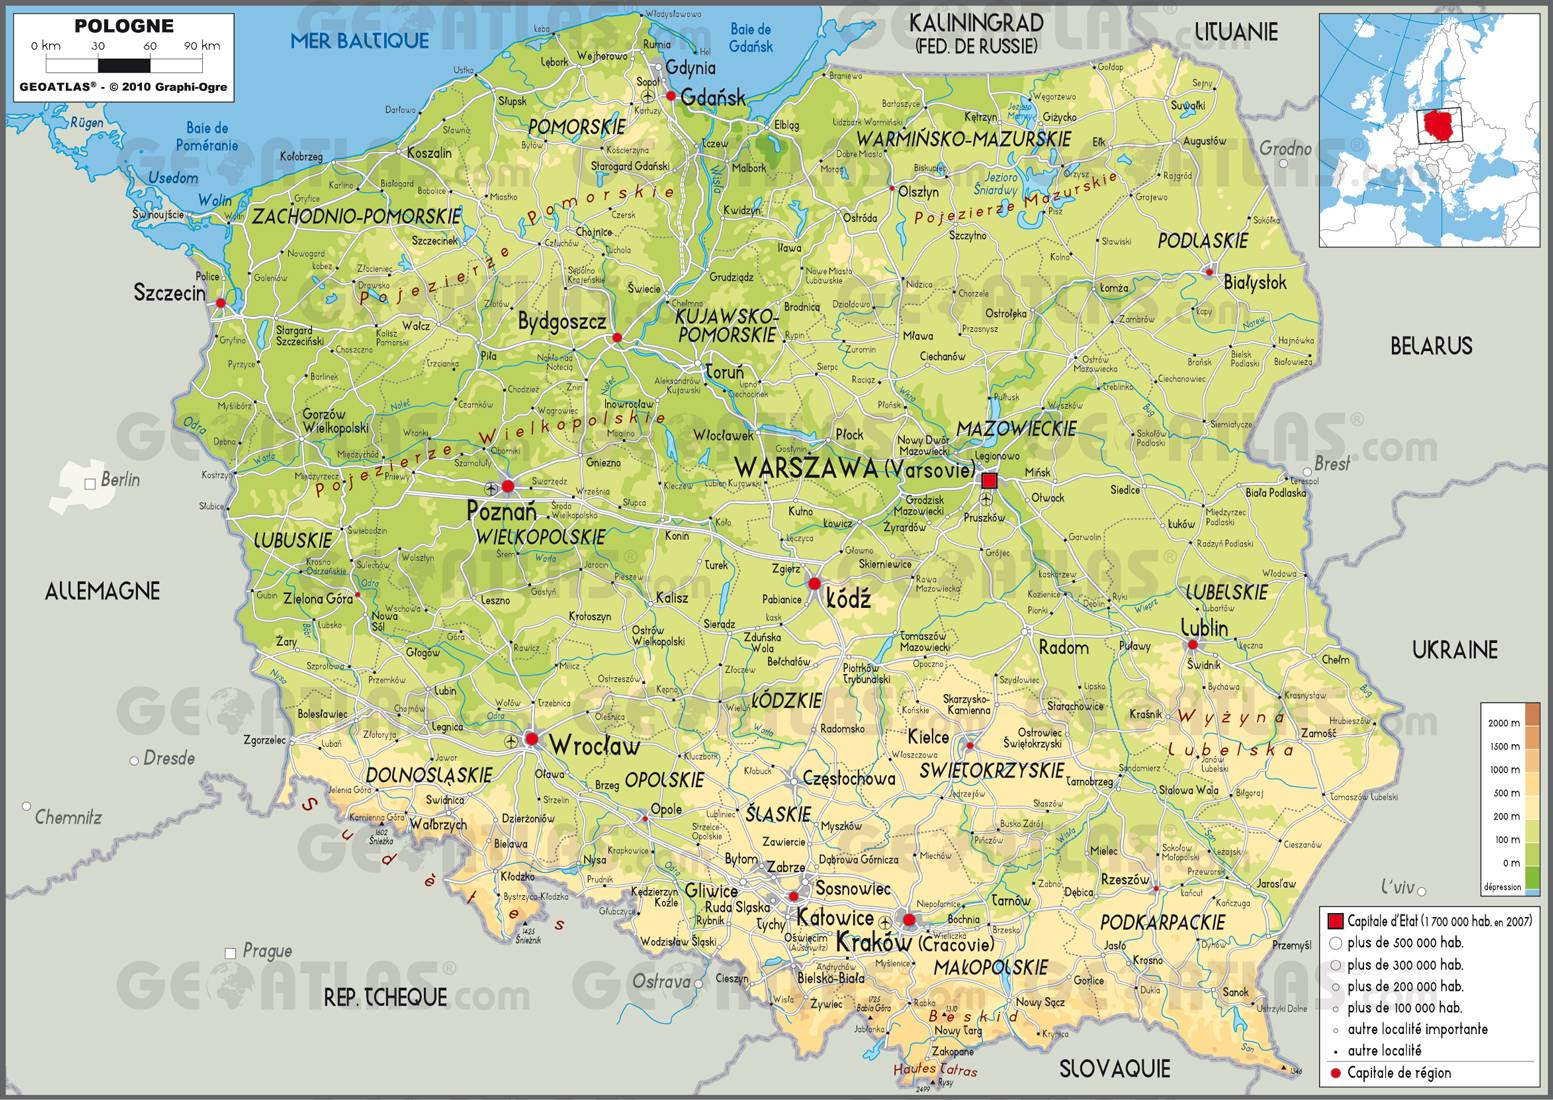 carte-geographique-de-la-pologne - Photo